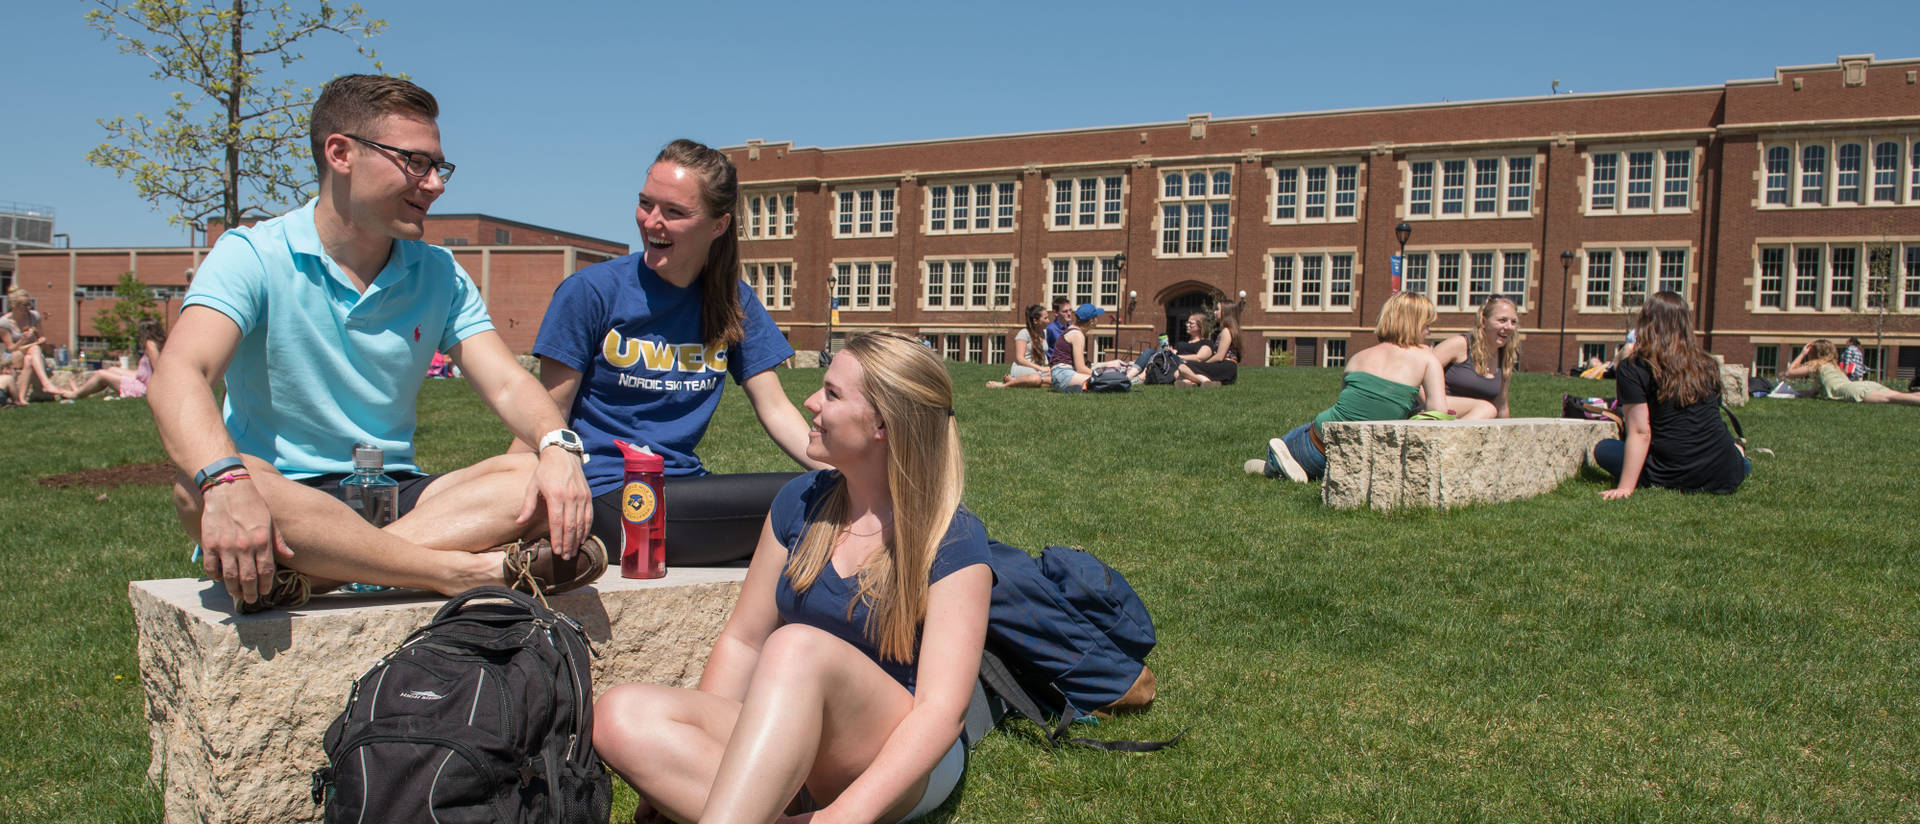 Students enjoy lower campus on a warm spring day.